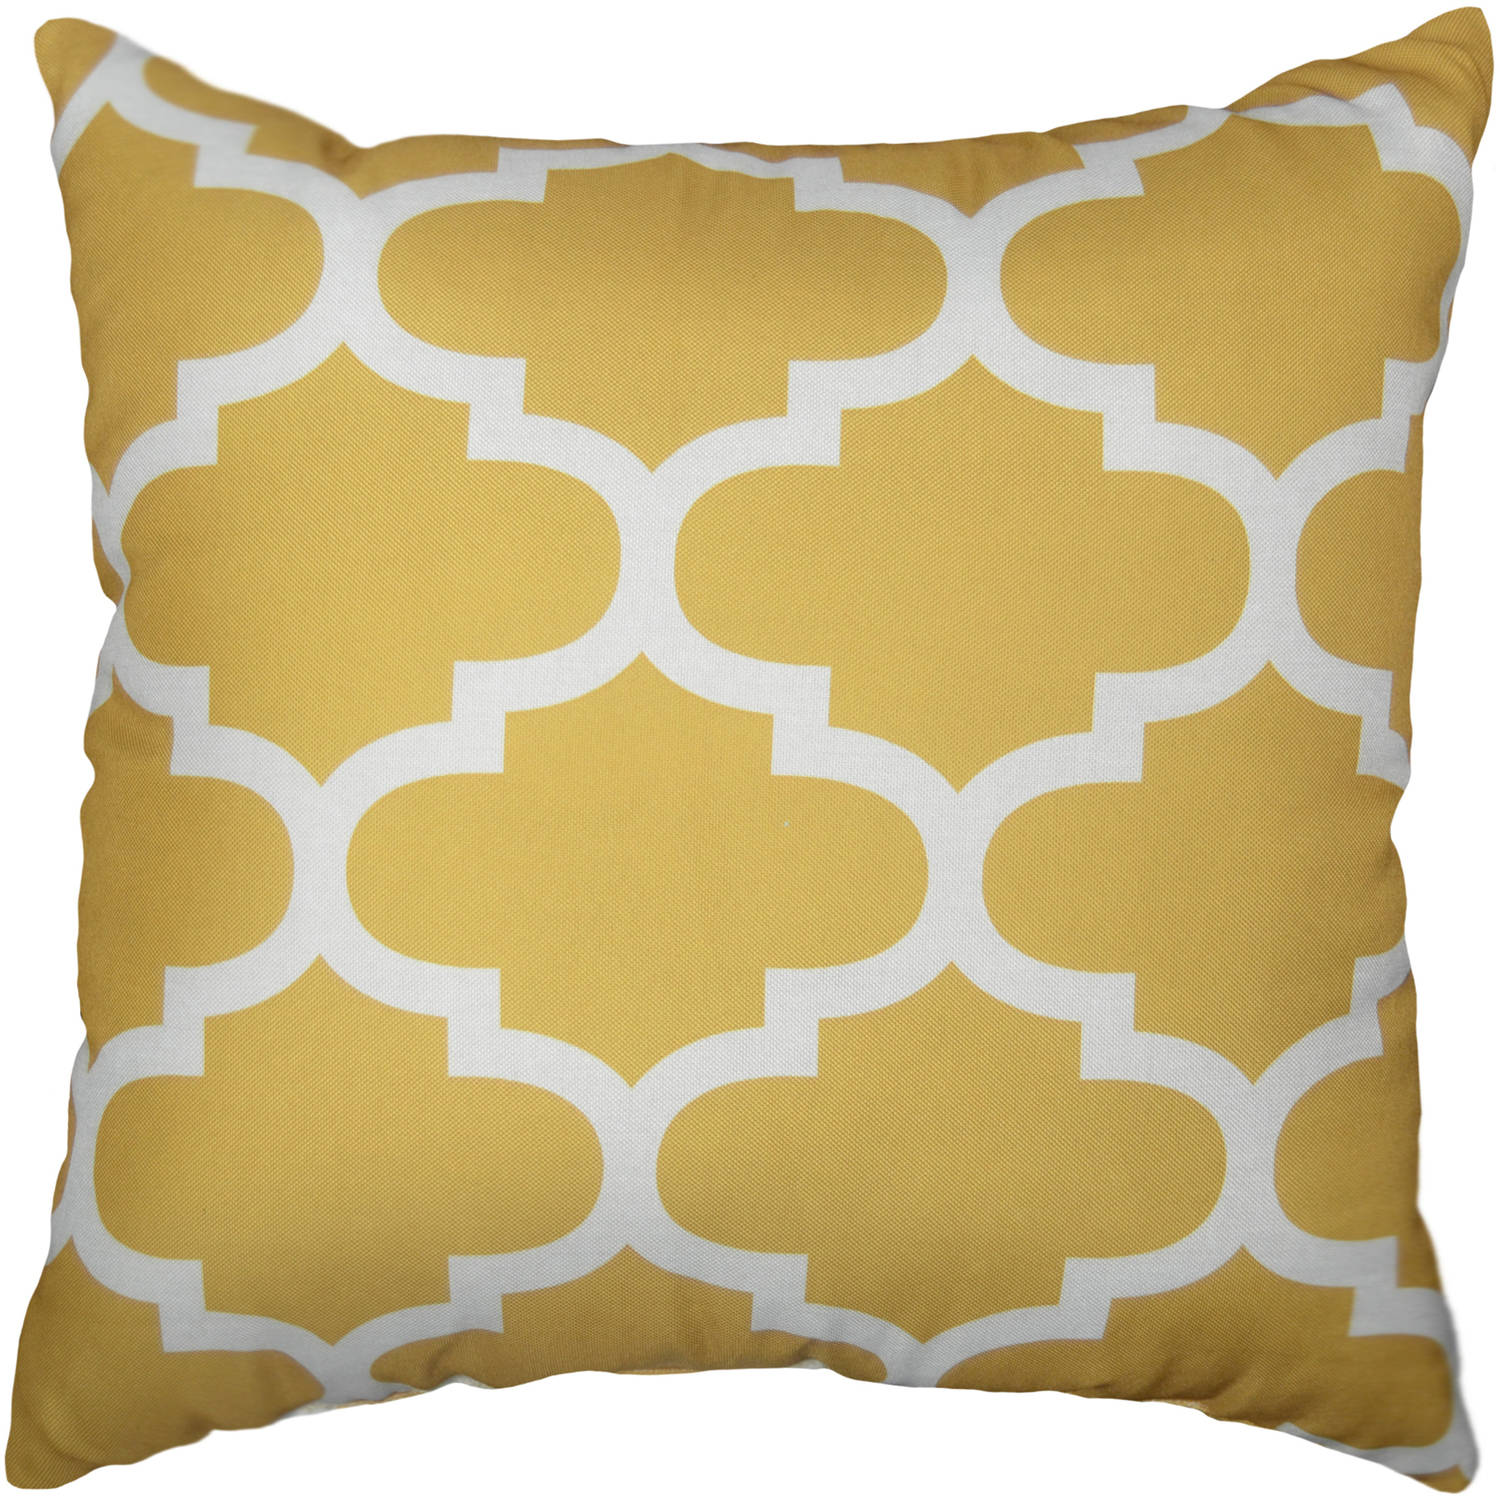 mainstays fretwork decorative pillow walmartcom - Gold Decorative Pillows